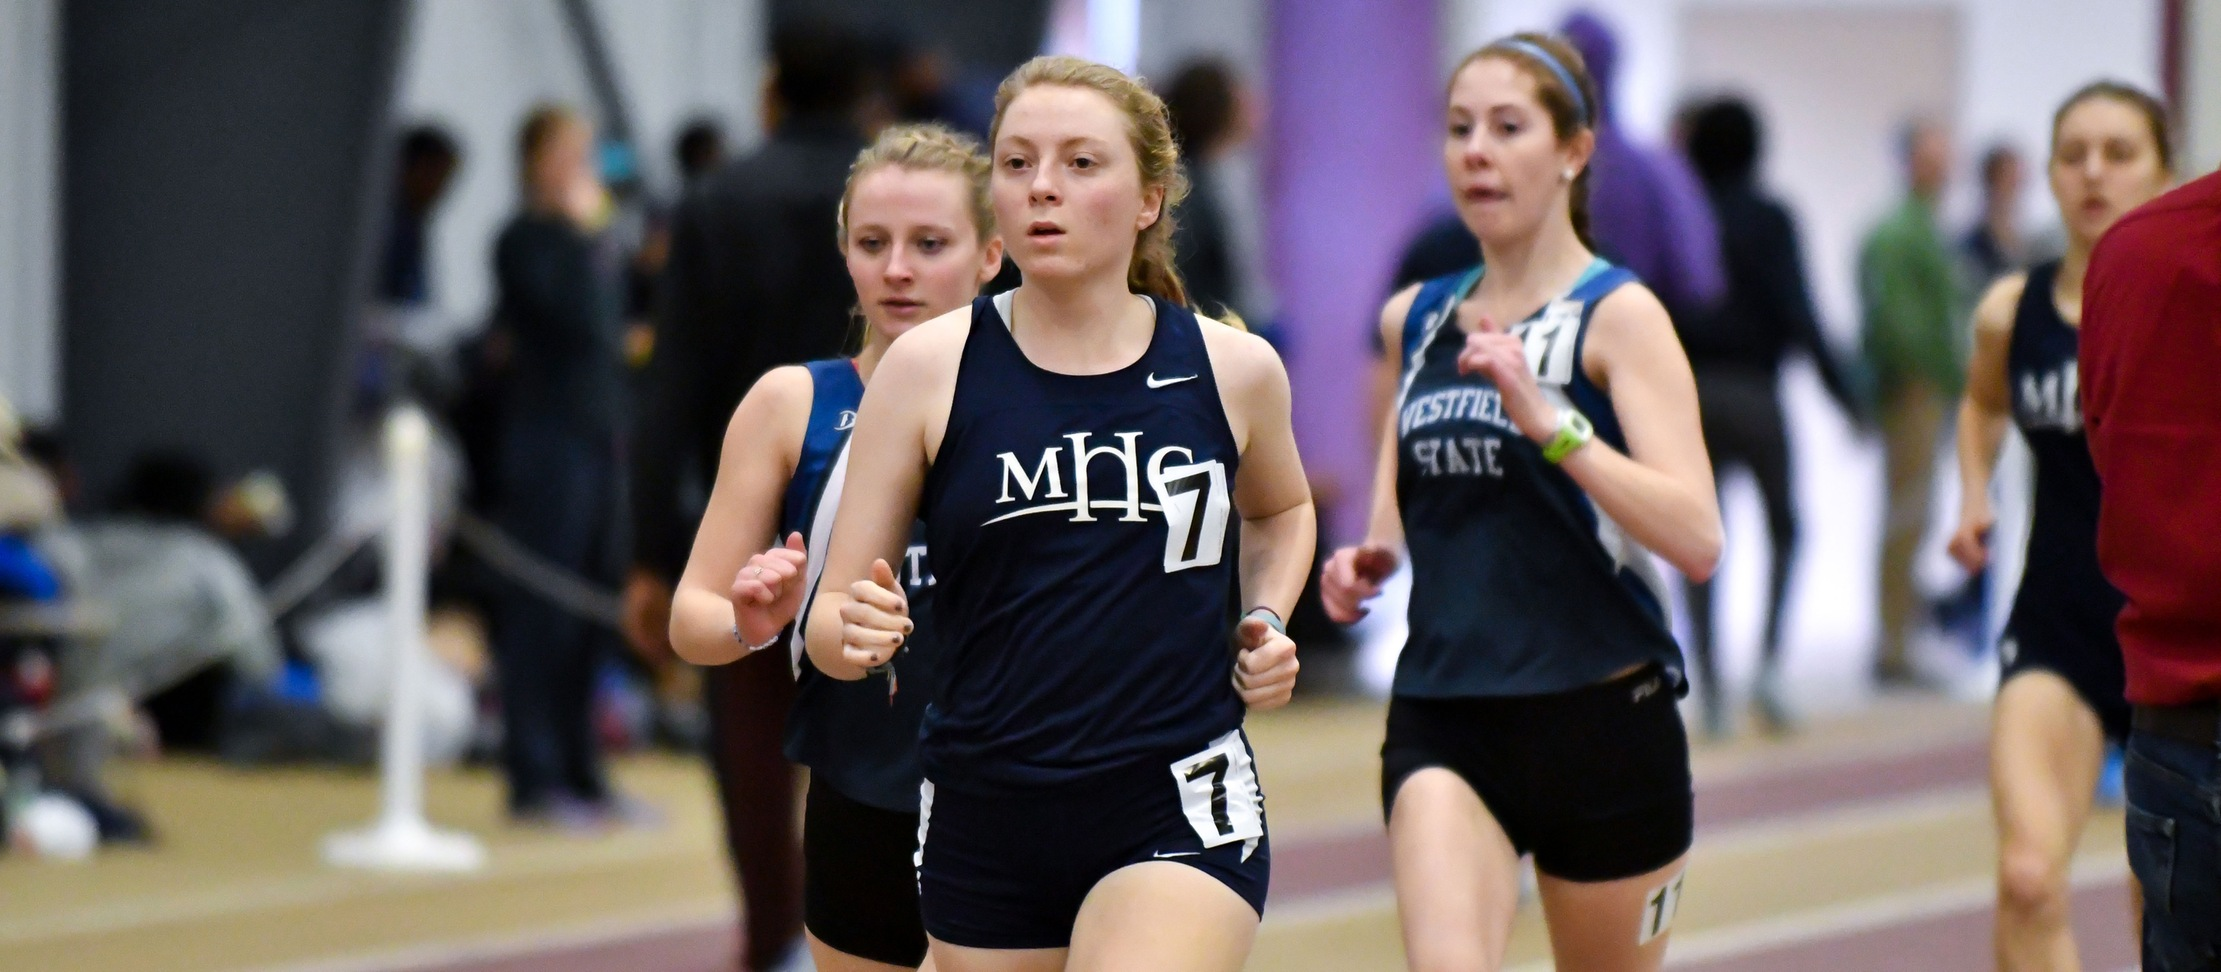 Mia Barnes indoor track and field action photo.